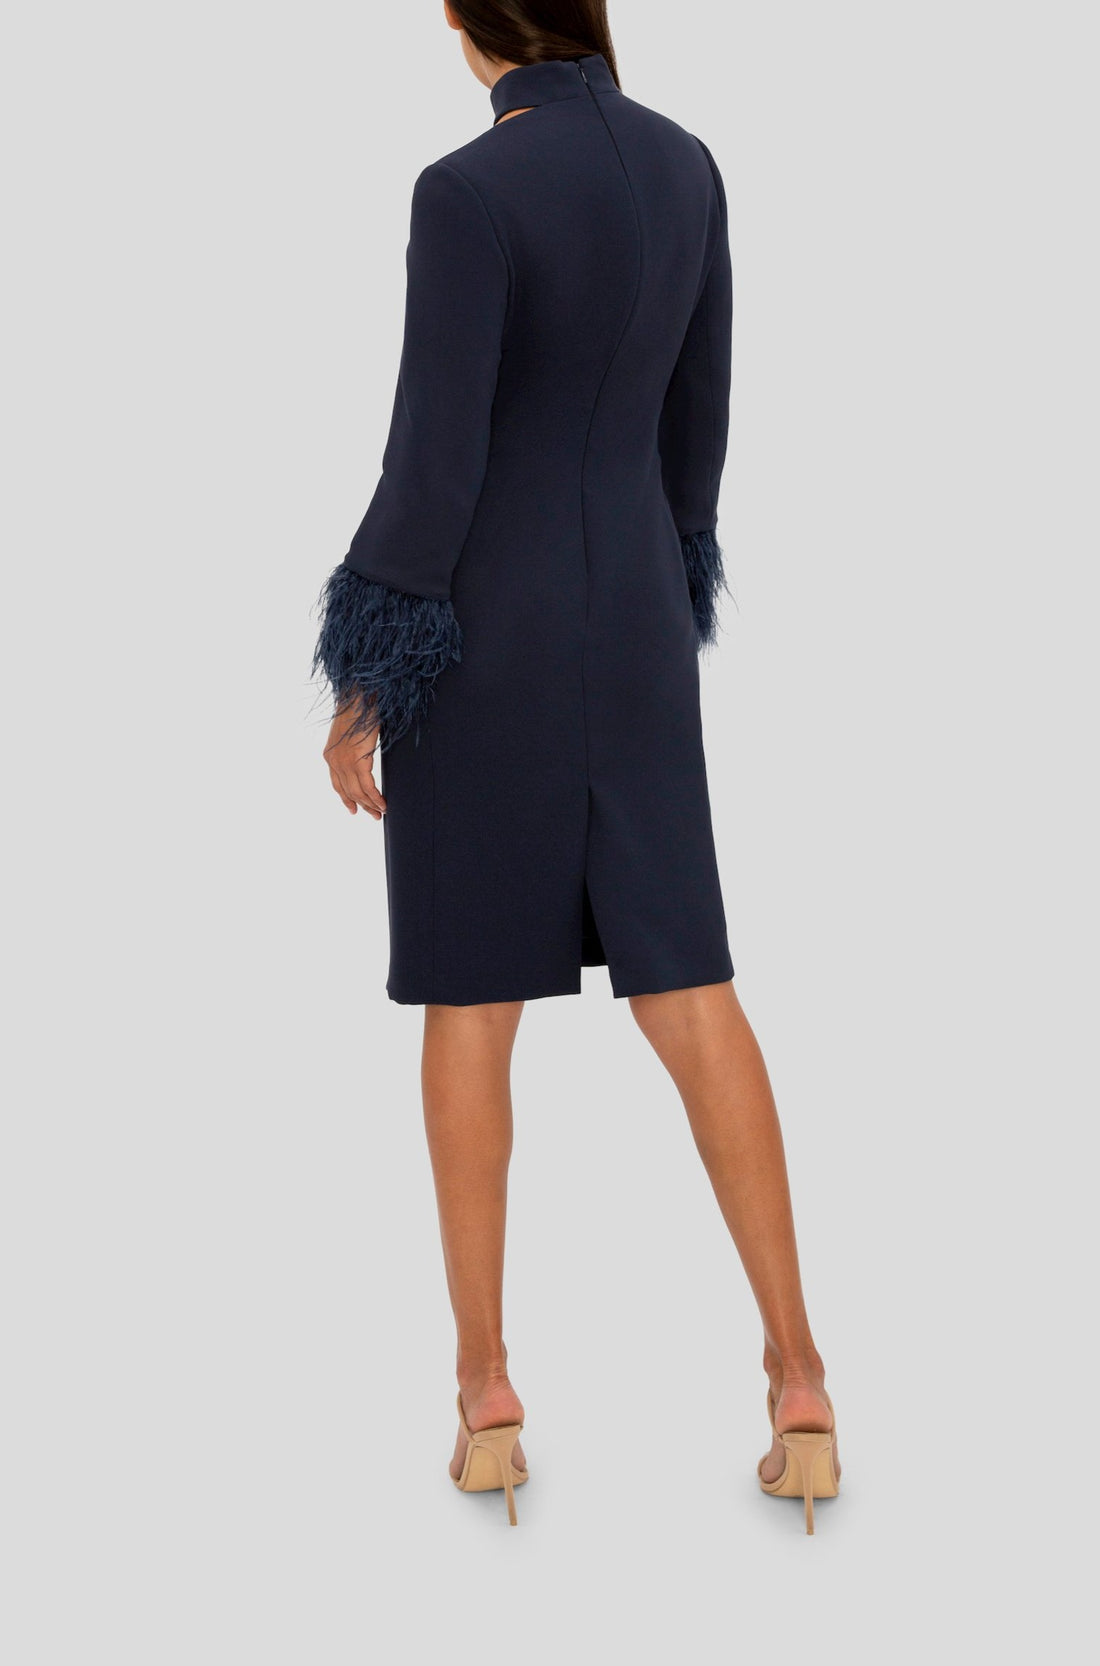 NAVY FEATHER TRIMMED COCKTAIL HOUR DRESS